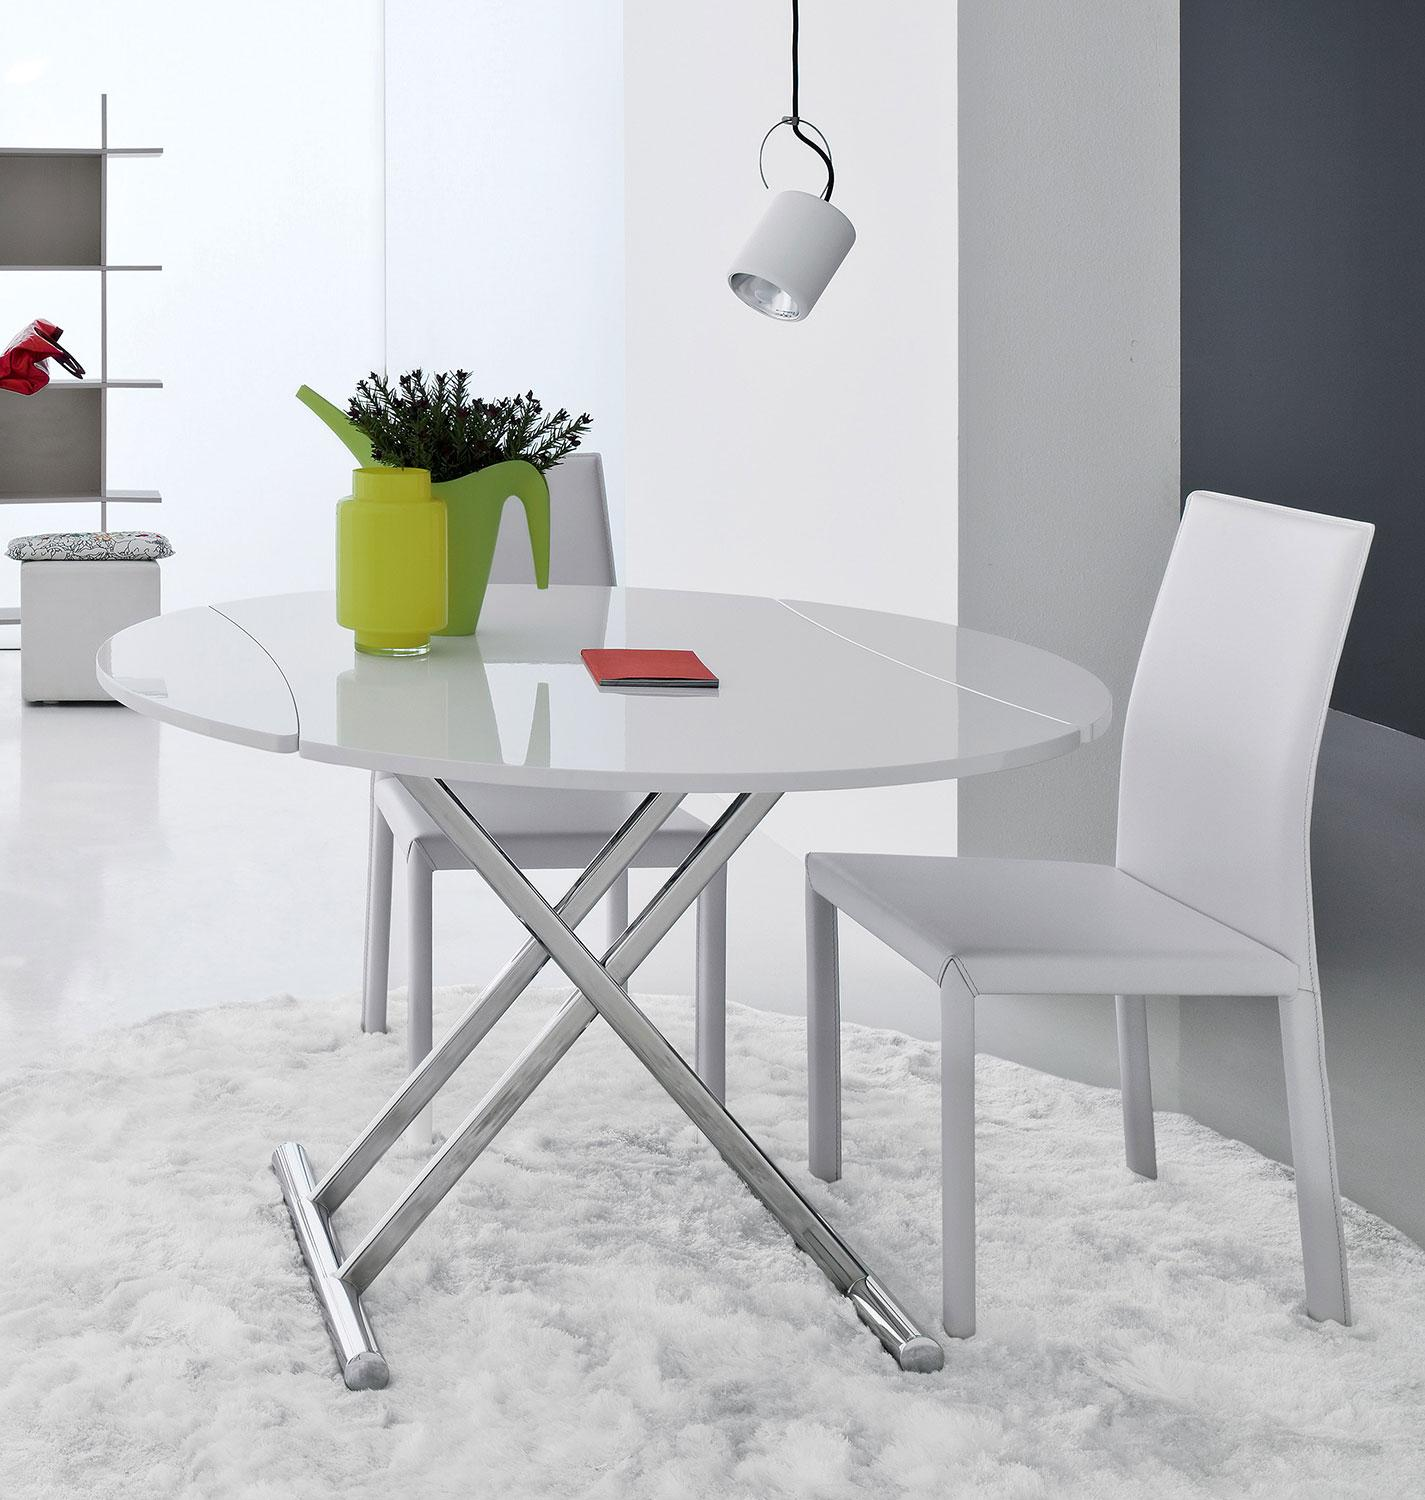 up and down table is designed for those who love dynamic shapes discover our adjustable